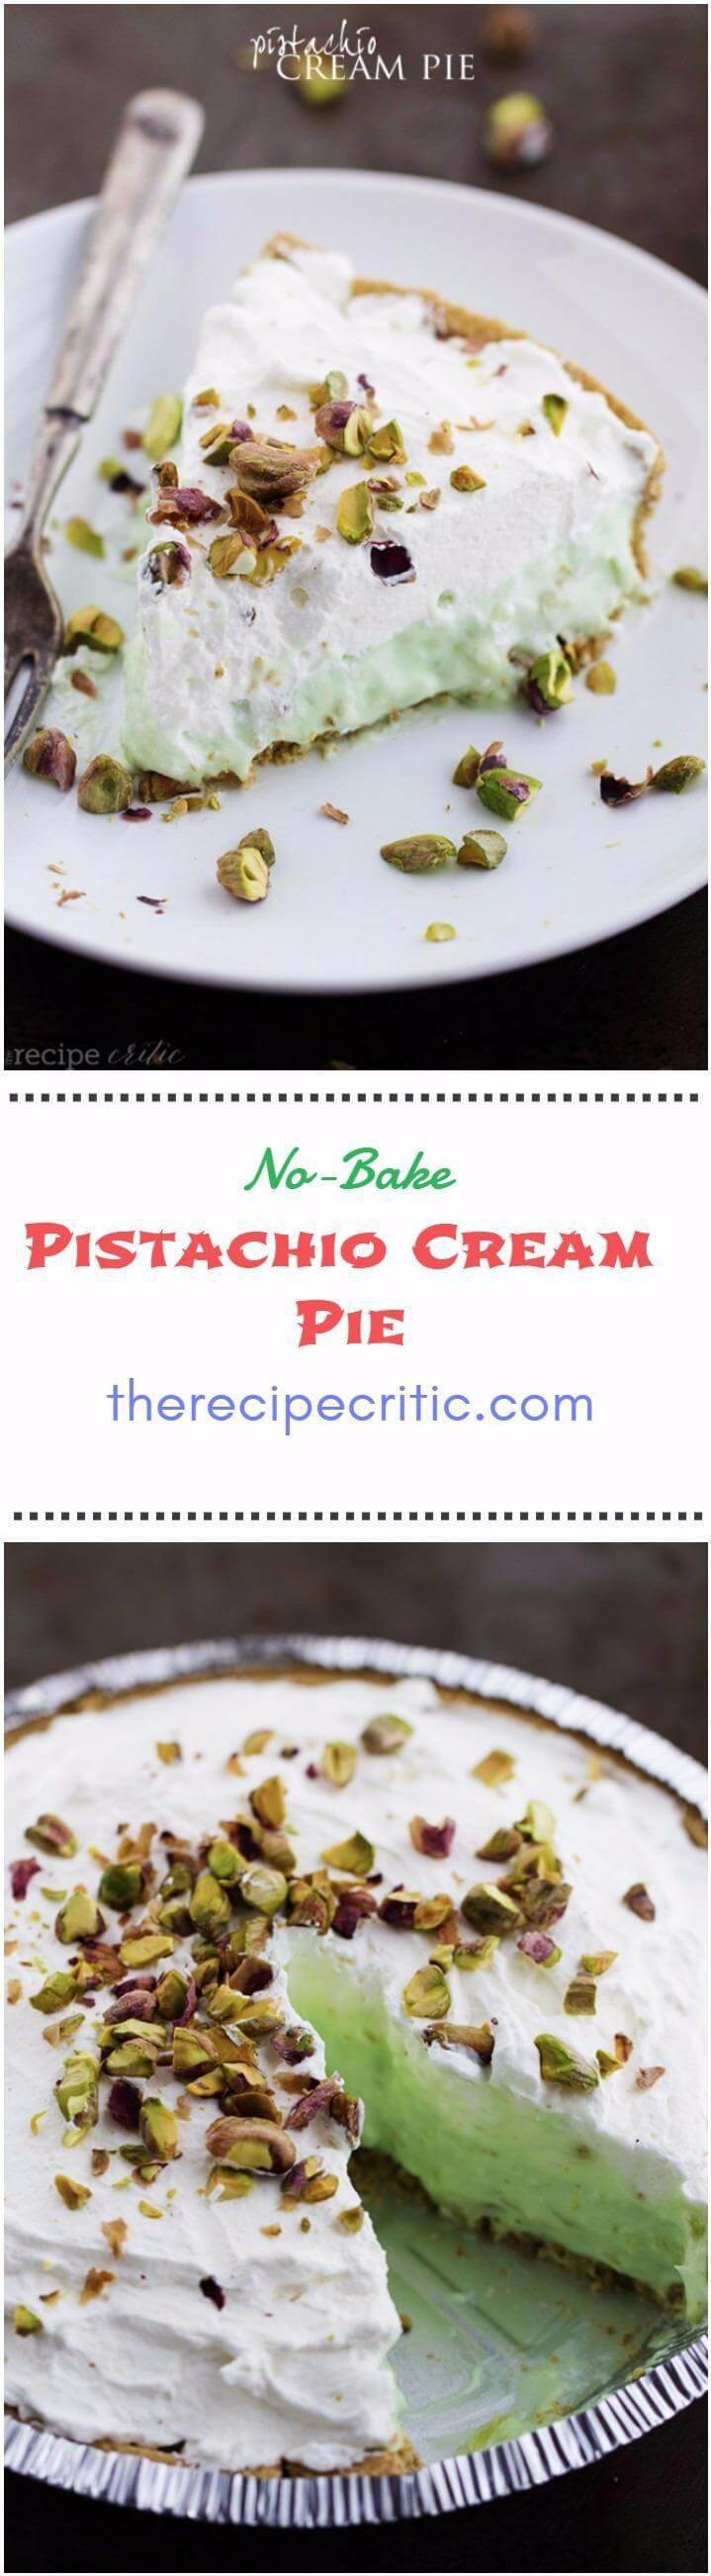 no-bake pistachio cream pie